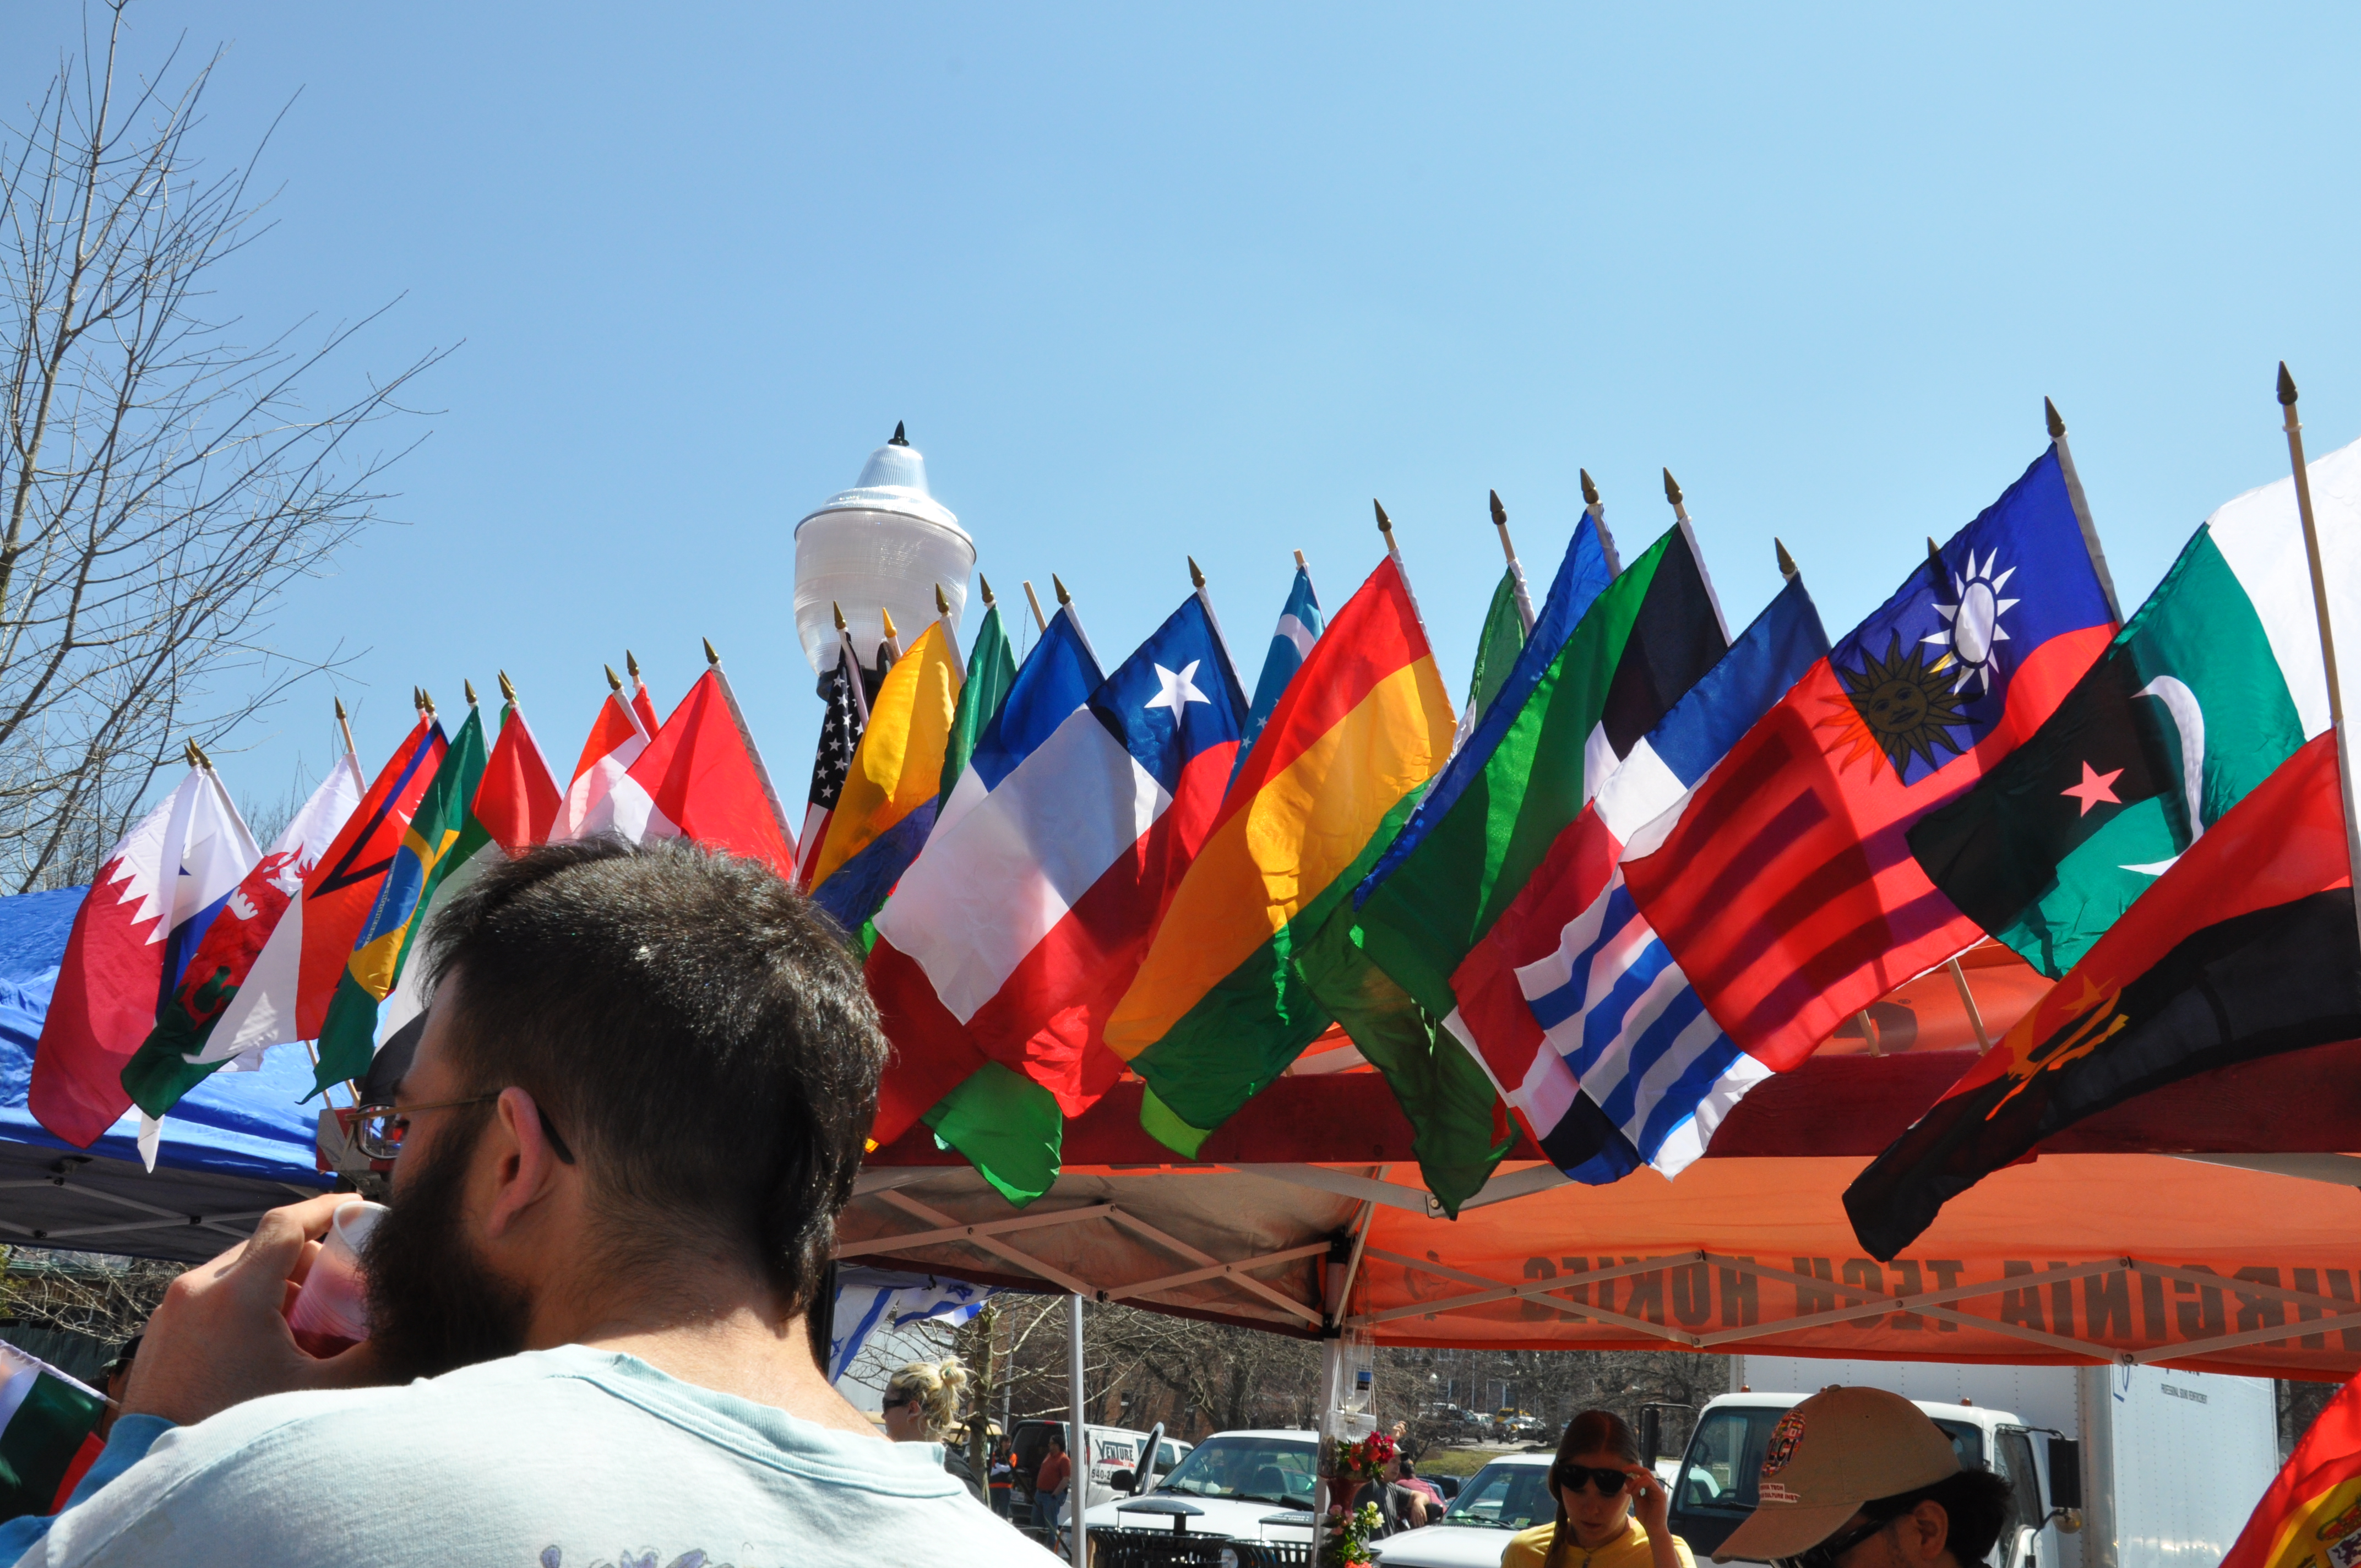 Flags of many nations displayed at the International Street Fair